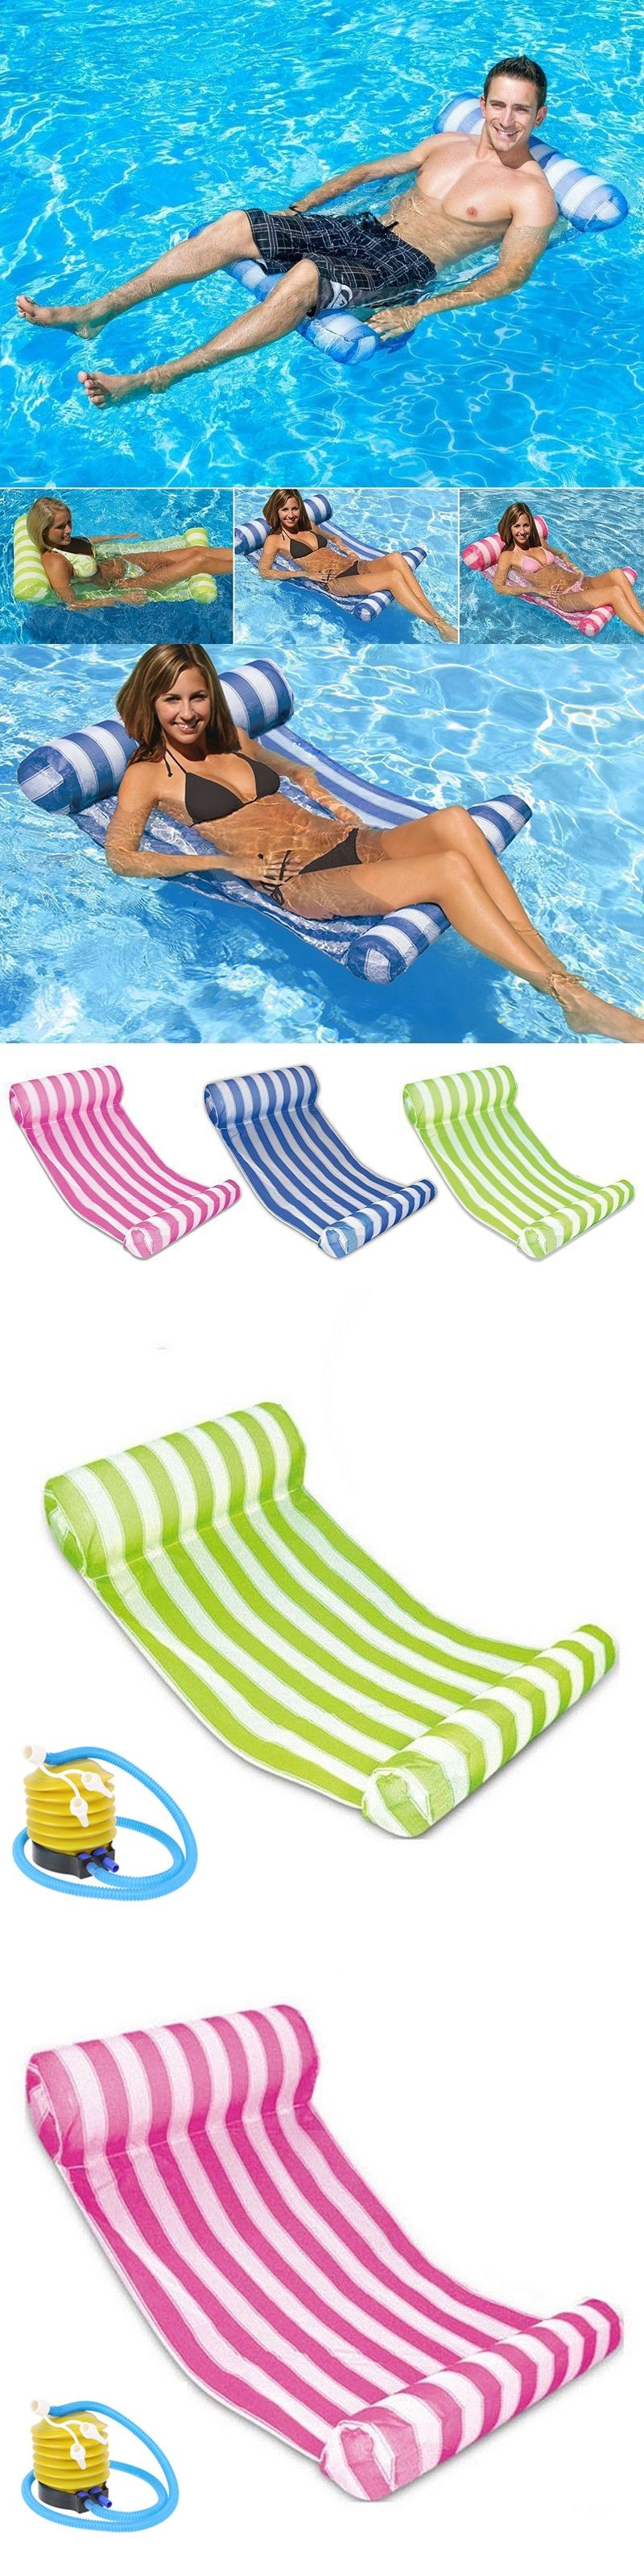 chair lounge air sofa waterproof product aiwotowow lounger hammock water portable dream inflatable beach